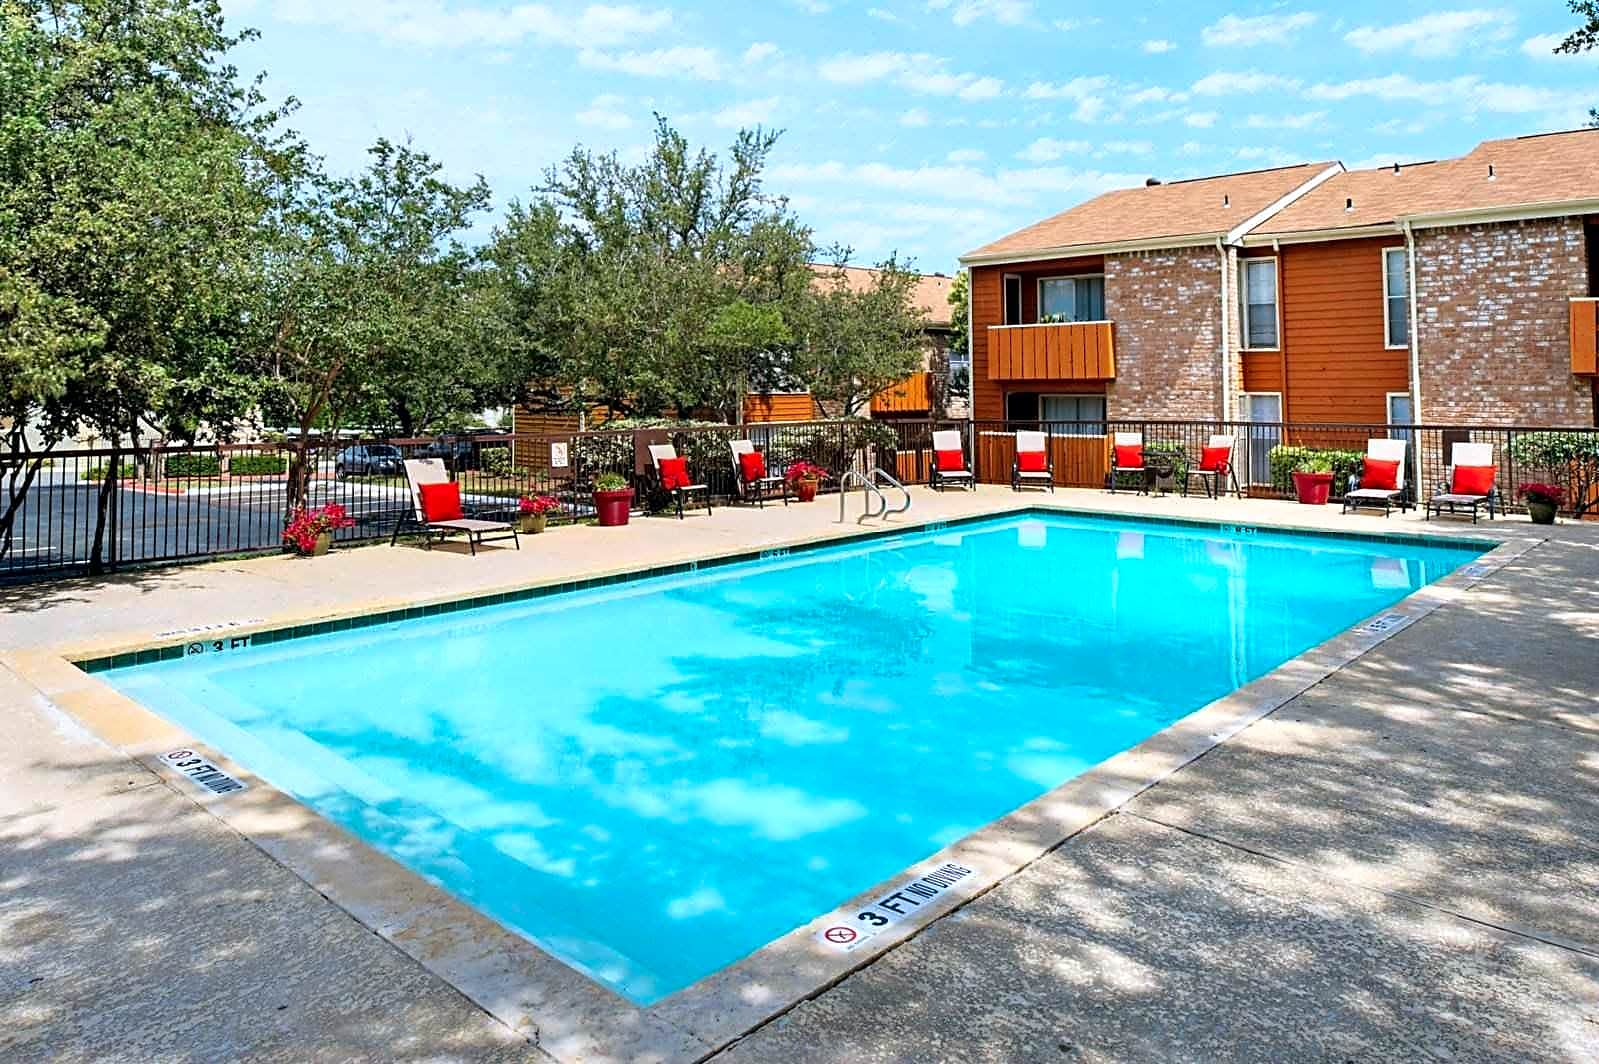 Photo: San Antonio Apartment for Rent - $555.00 / month; 1 Bd & 1 Ba